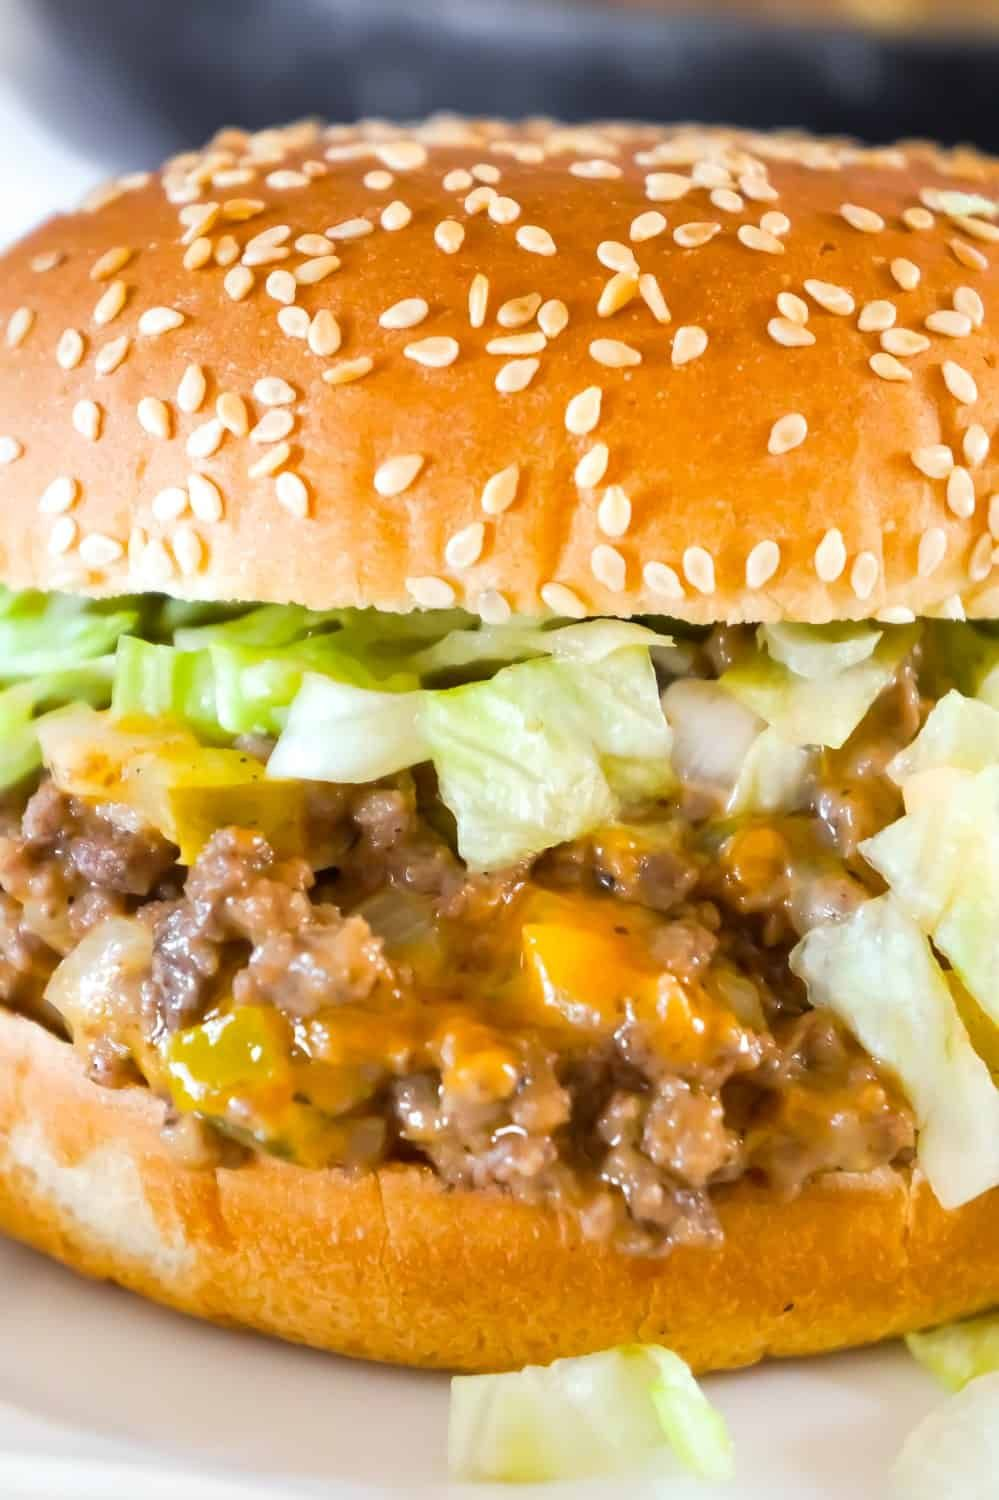 Big Mac Sloppy Joes #beefdishes